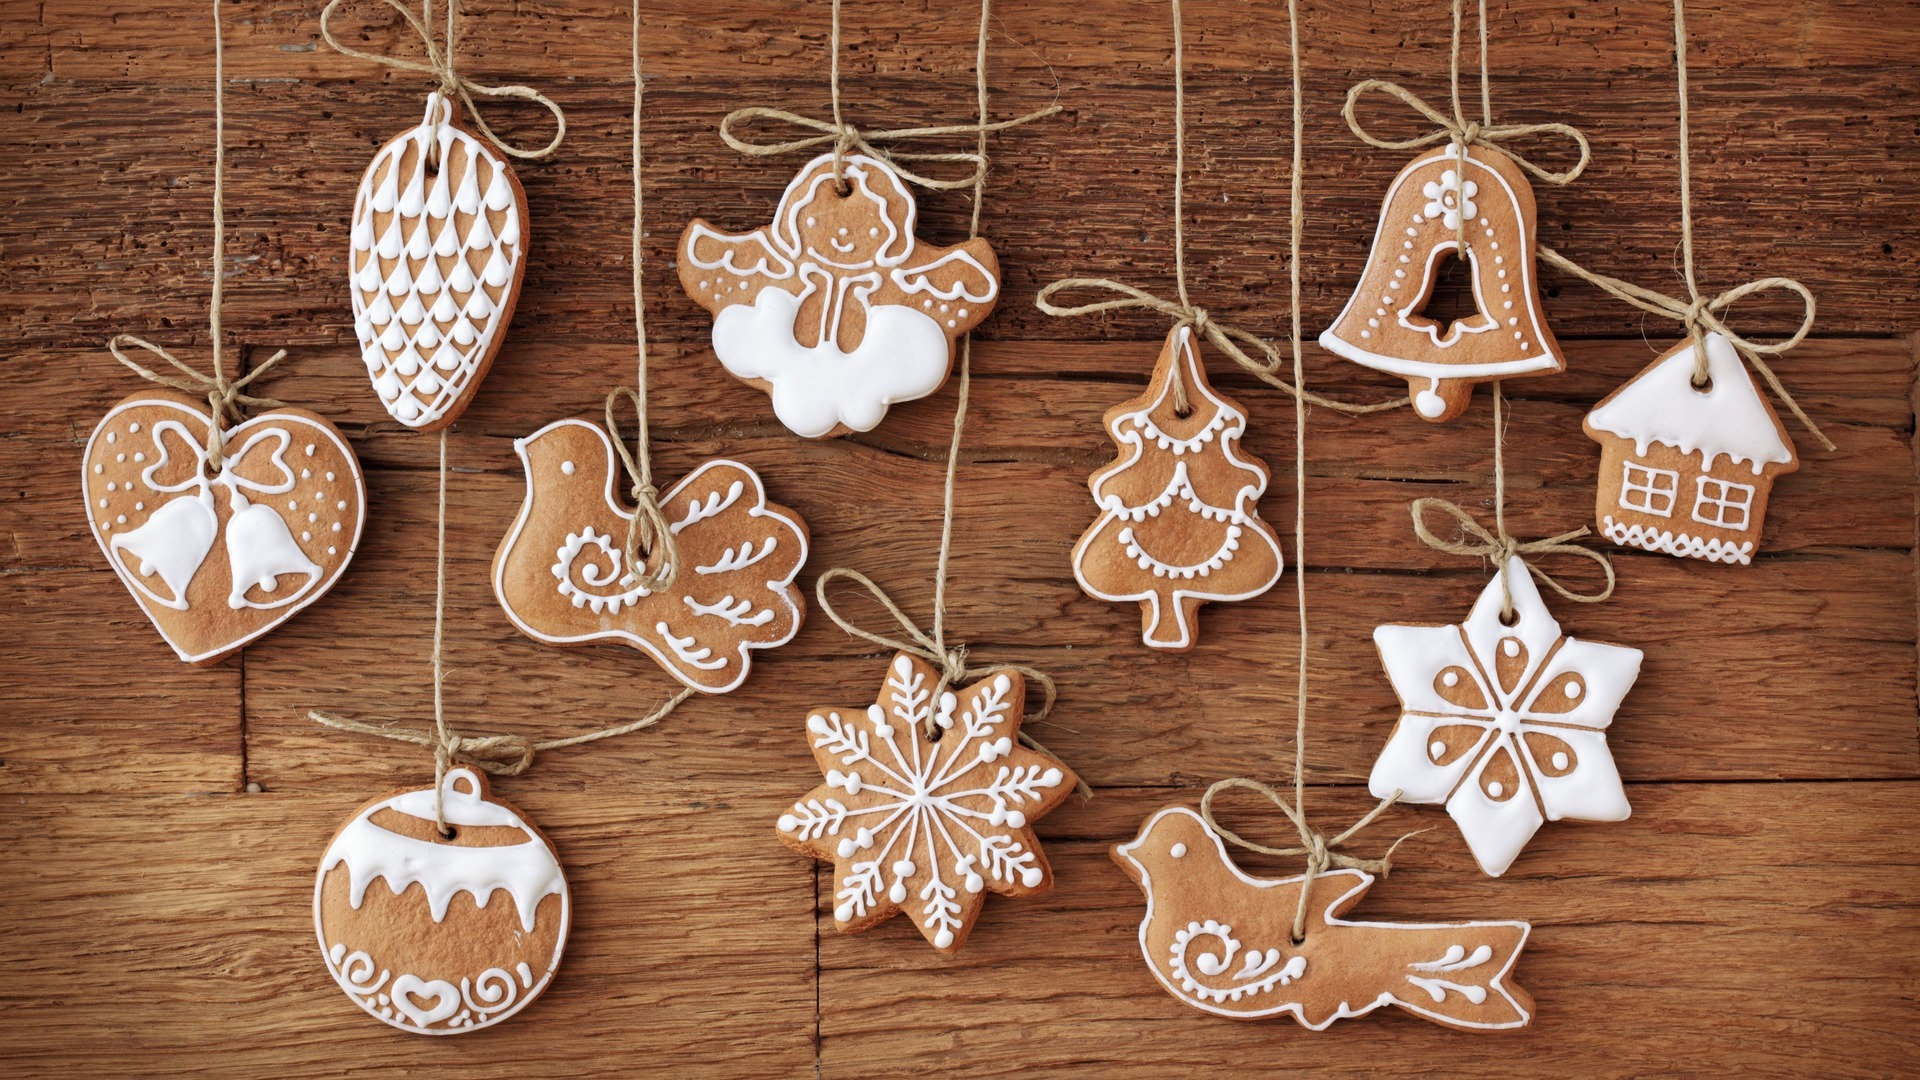 28679 download wallpaper Holidays, Food, Christmas, Xmas, Cookies screensavers and pictures for free